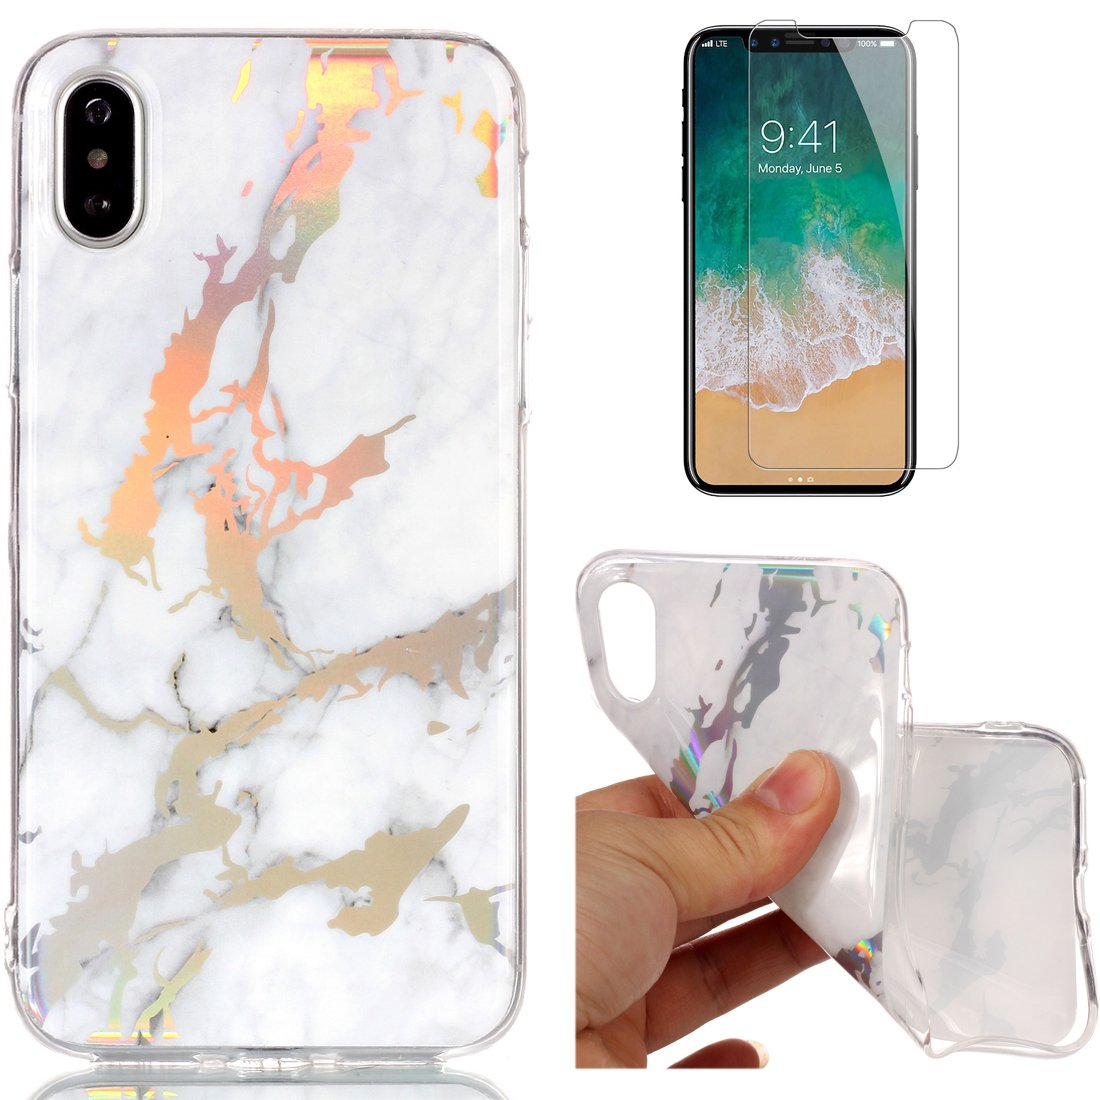 For iphone X Marble Case Purple, OYIME Unique Luxury Glitter Colorful Plating Pattern Skin Design Clear Silicone Rubber Slim Fit Ultra Thin Protective Back Cover Glossy Soft Gel TPU Shell Shockproof Drop Protection Protective Transparent Bumper and Screen